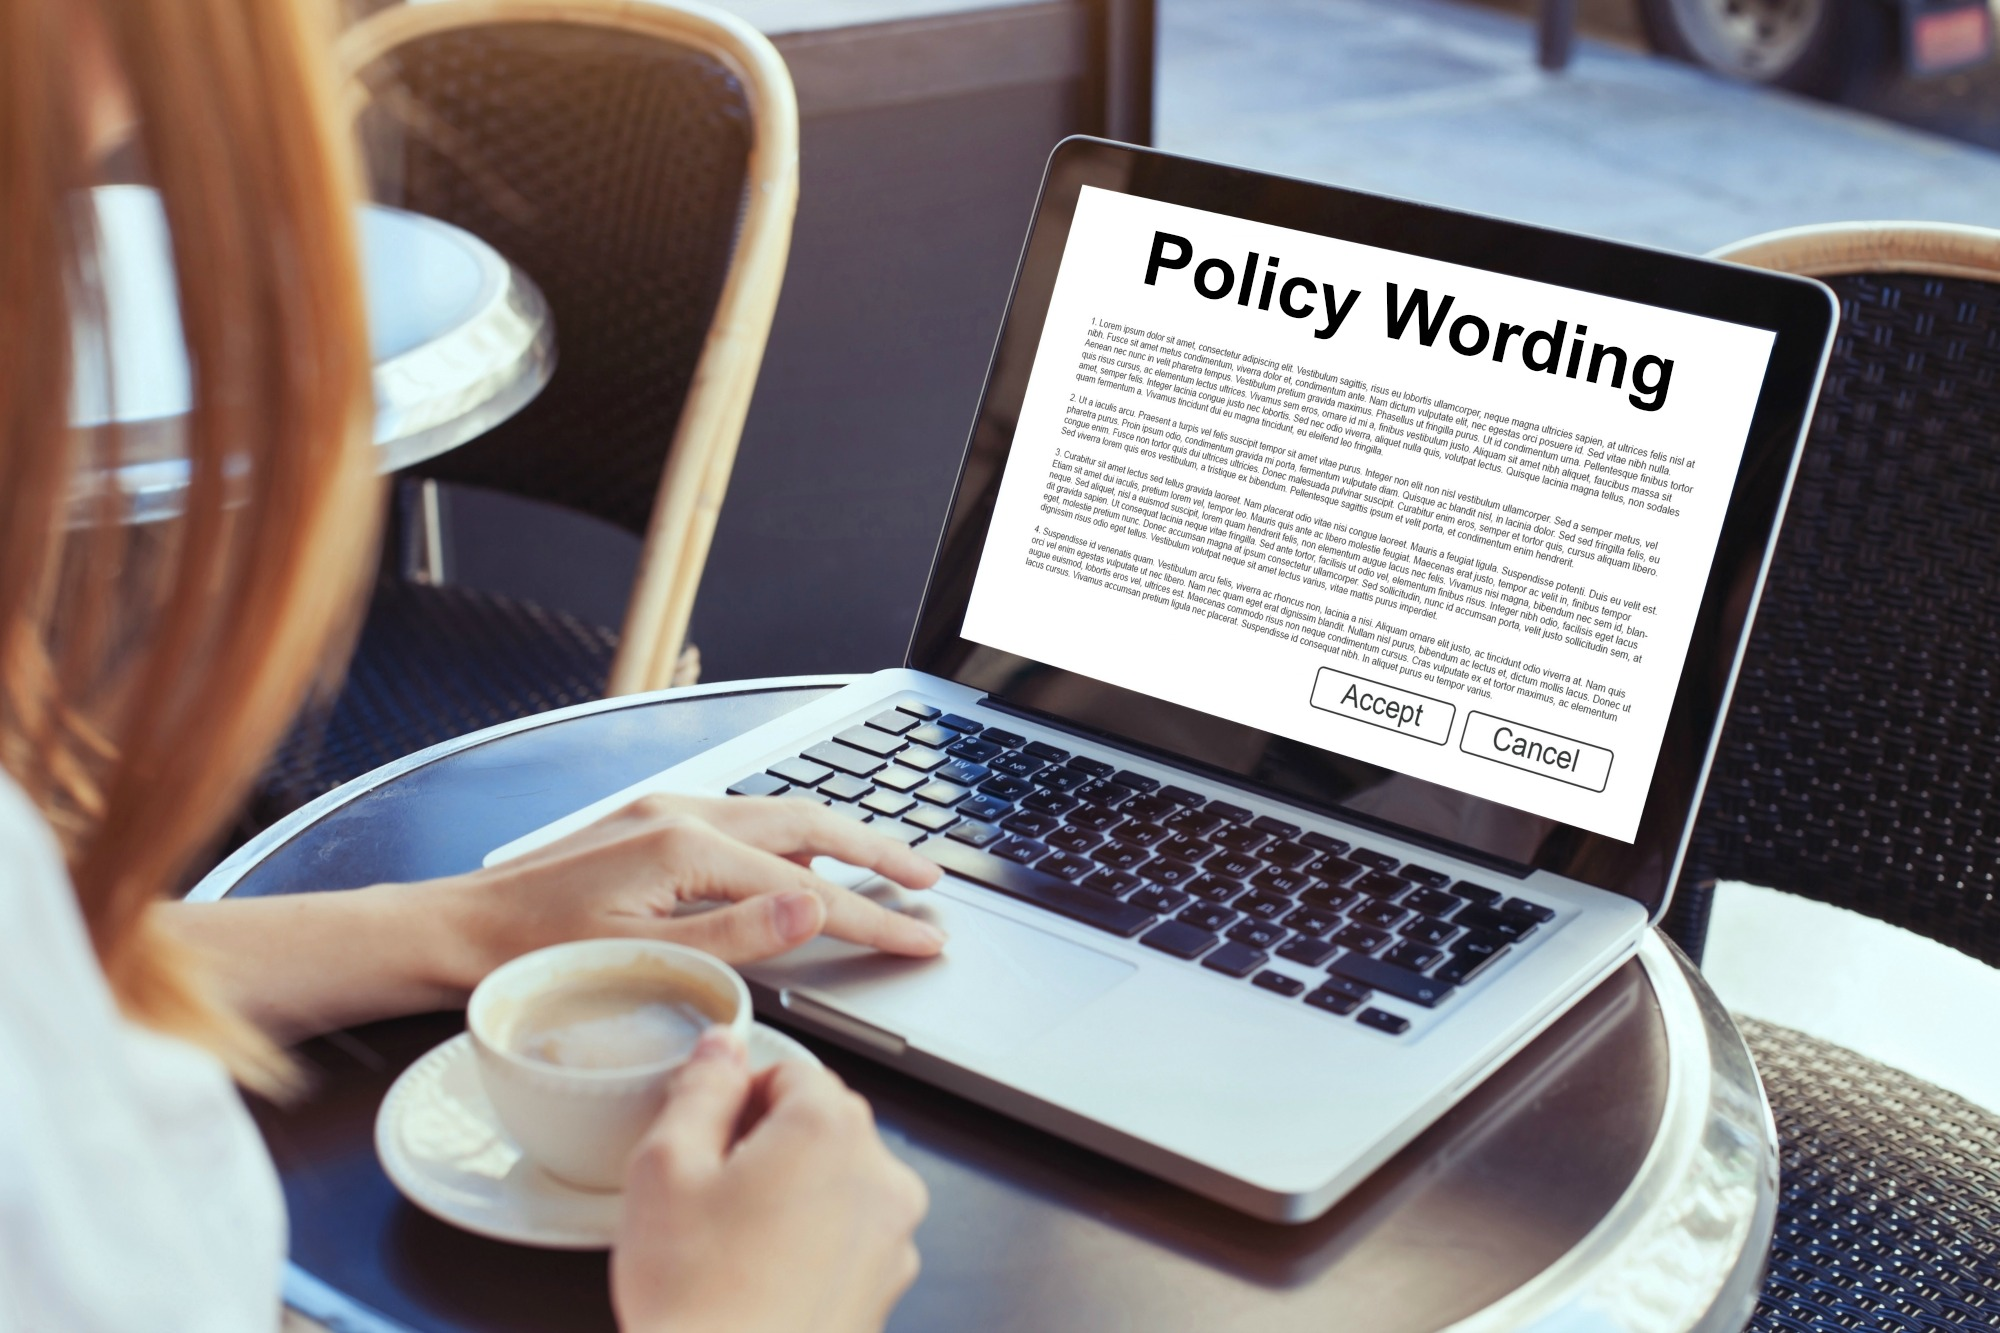 policy-wording